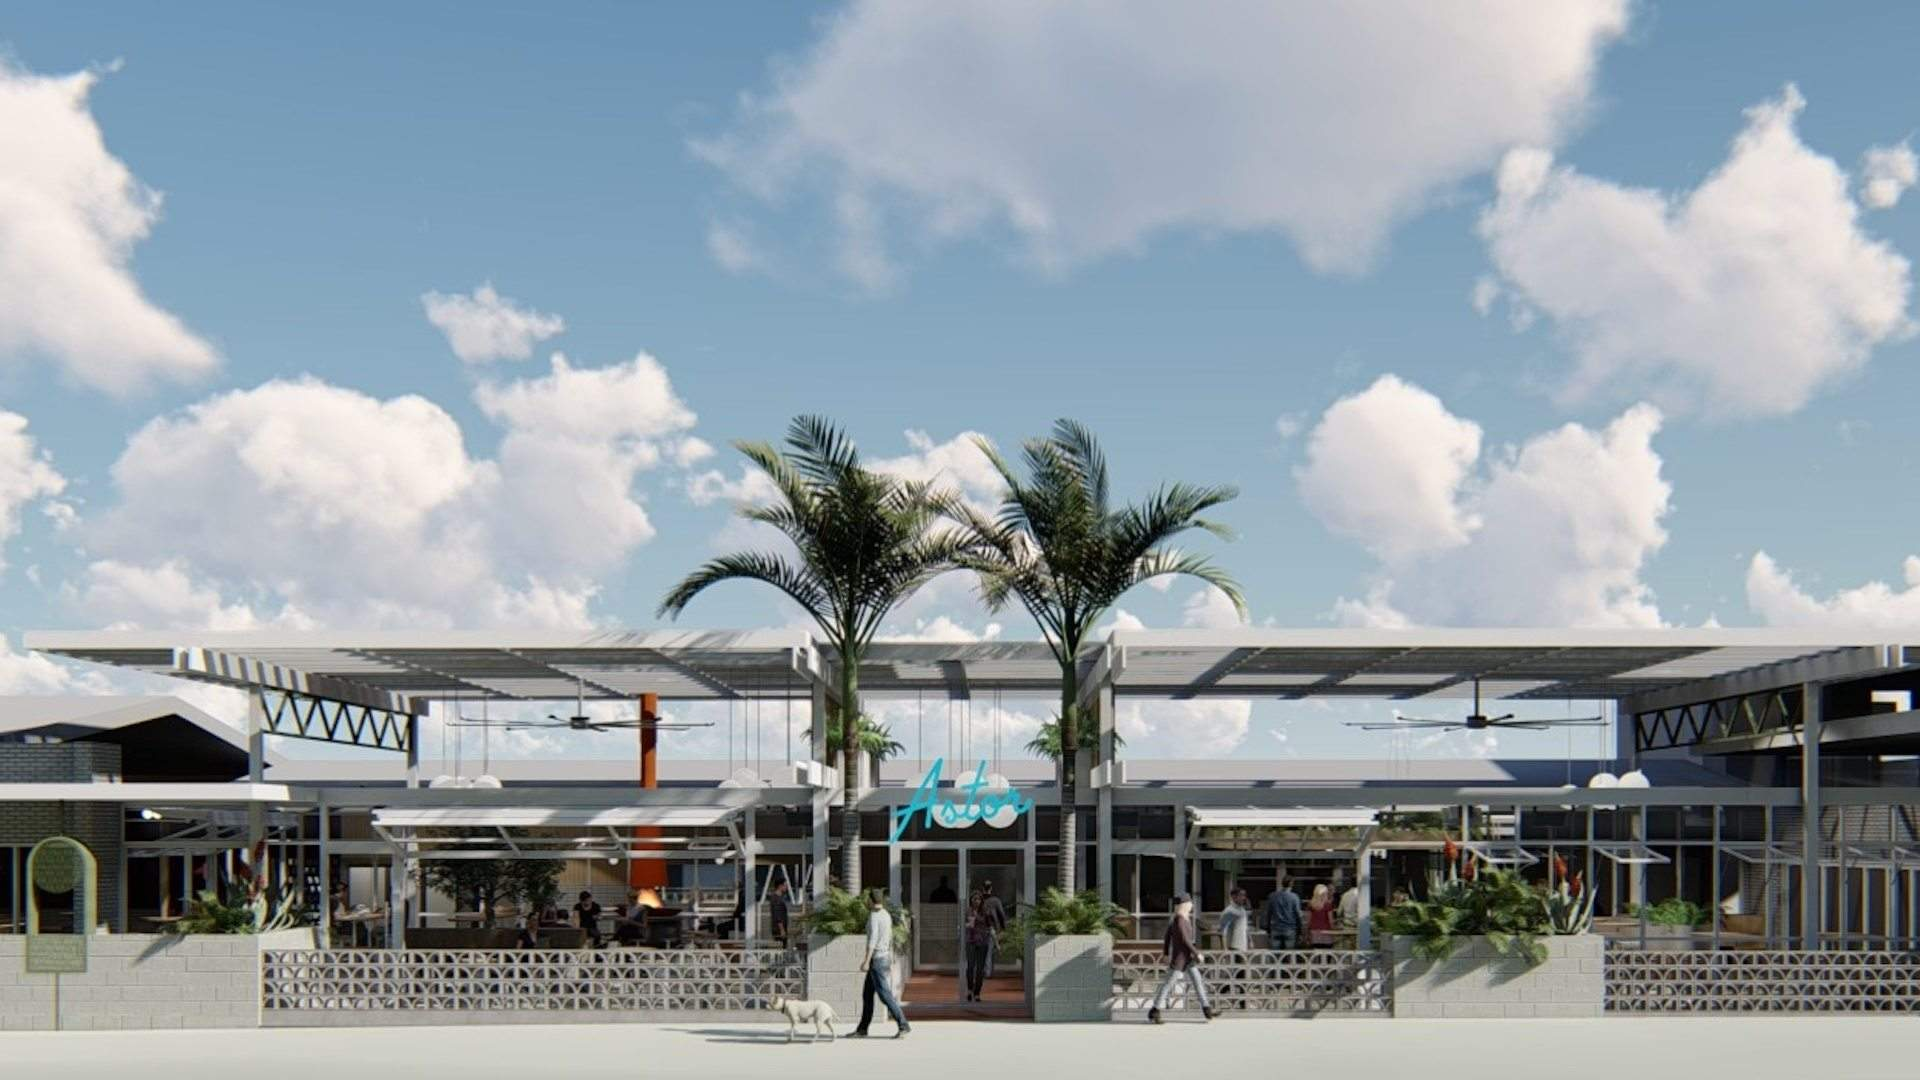 A Multimillion-Dollar Palm Springs-Inspired Motel Is Opening in Albury This Year